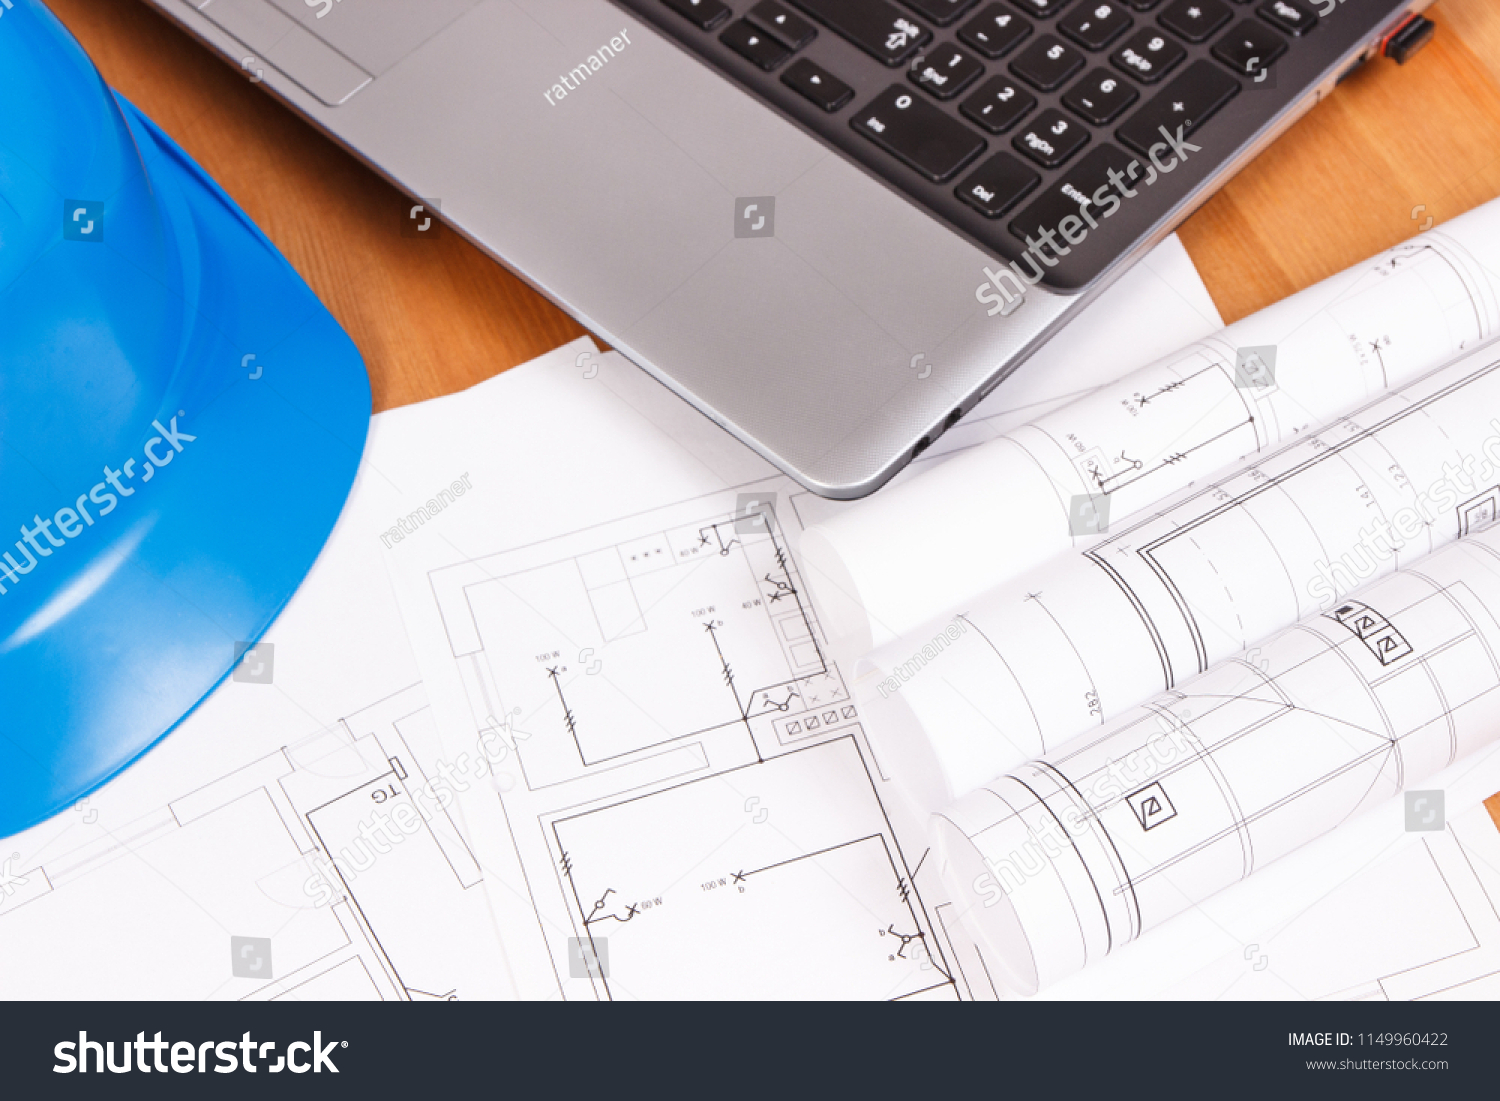 hight resolution of diagrams or electrical construction drawings with laptop and protective blue helmet for engineer jobs technology